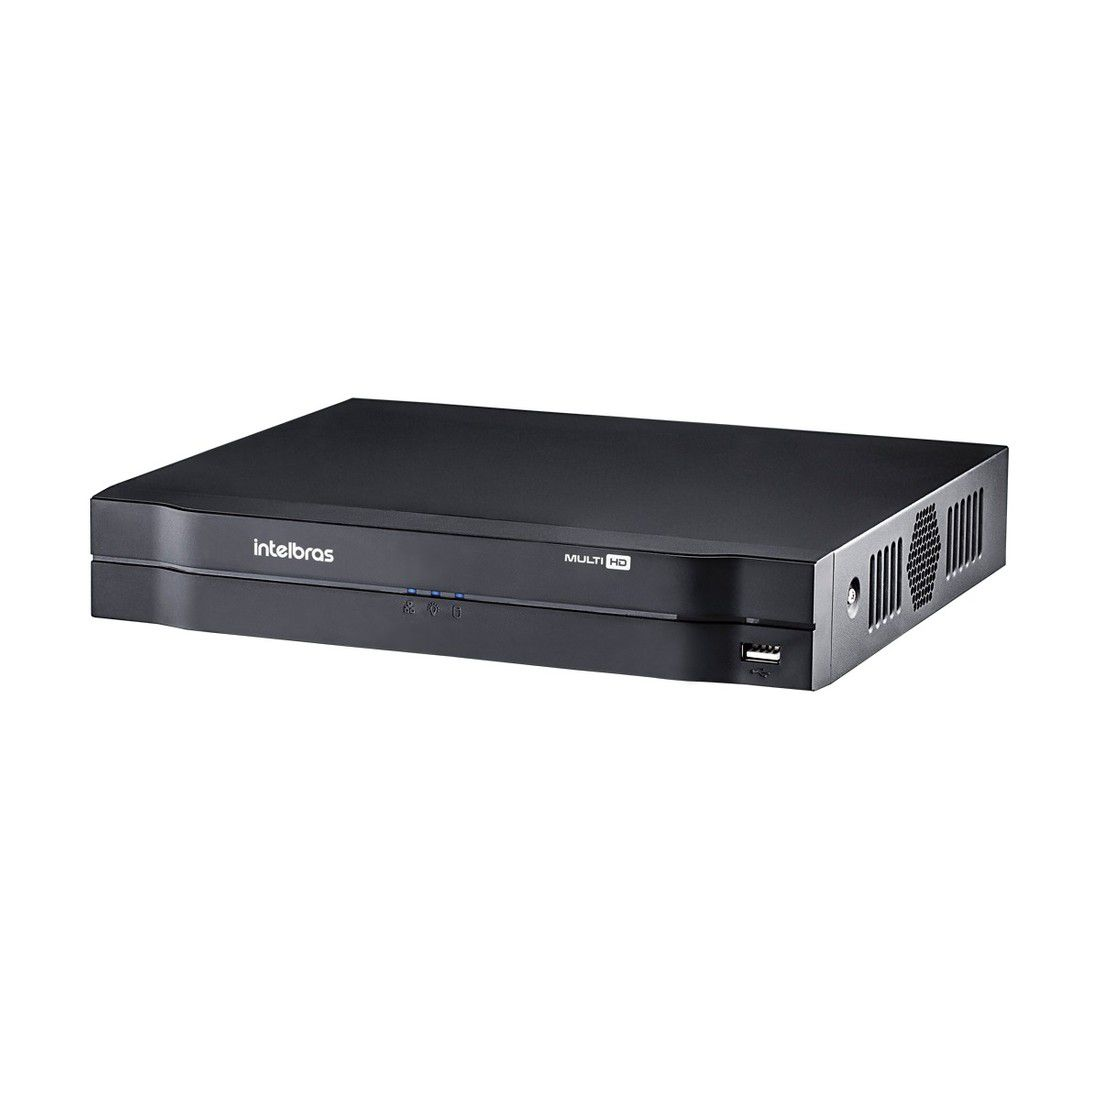 DVR Gravador de Vídeo Intelbras MHDX 1108 Multi HD 8 Canais